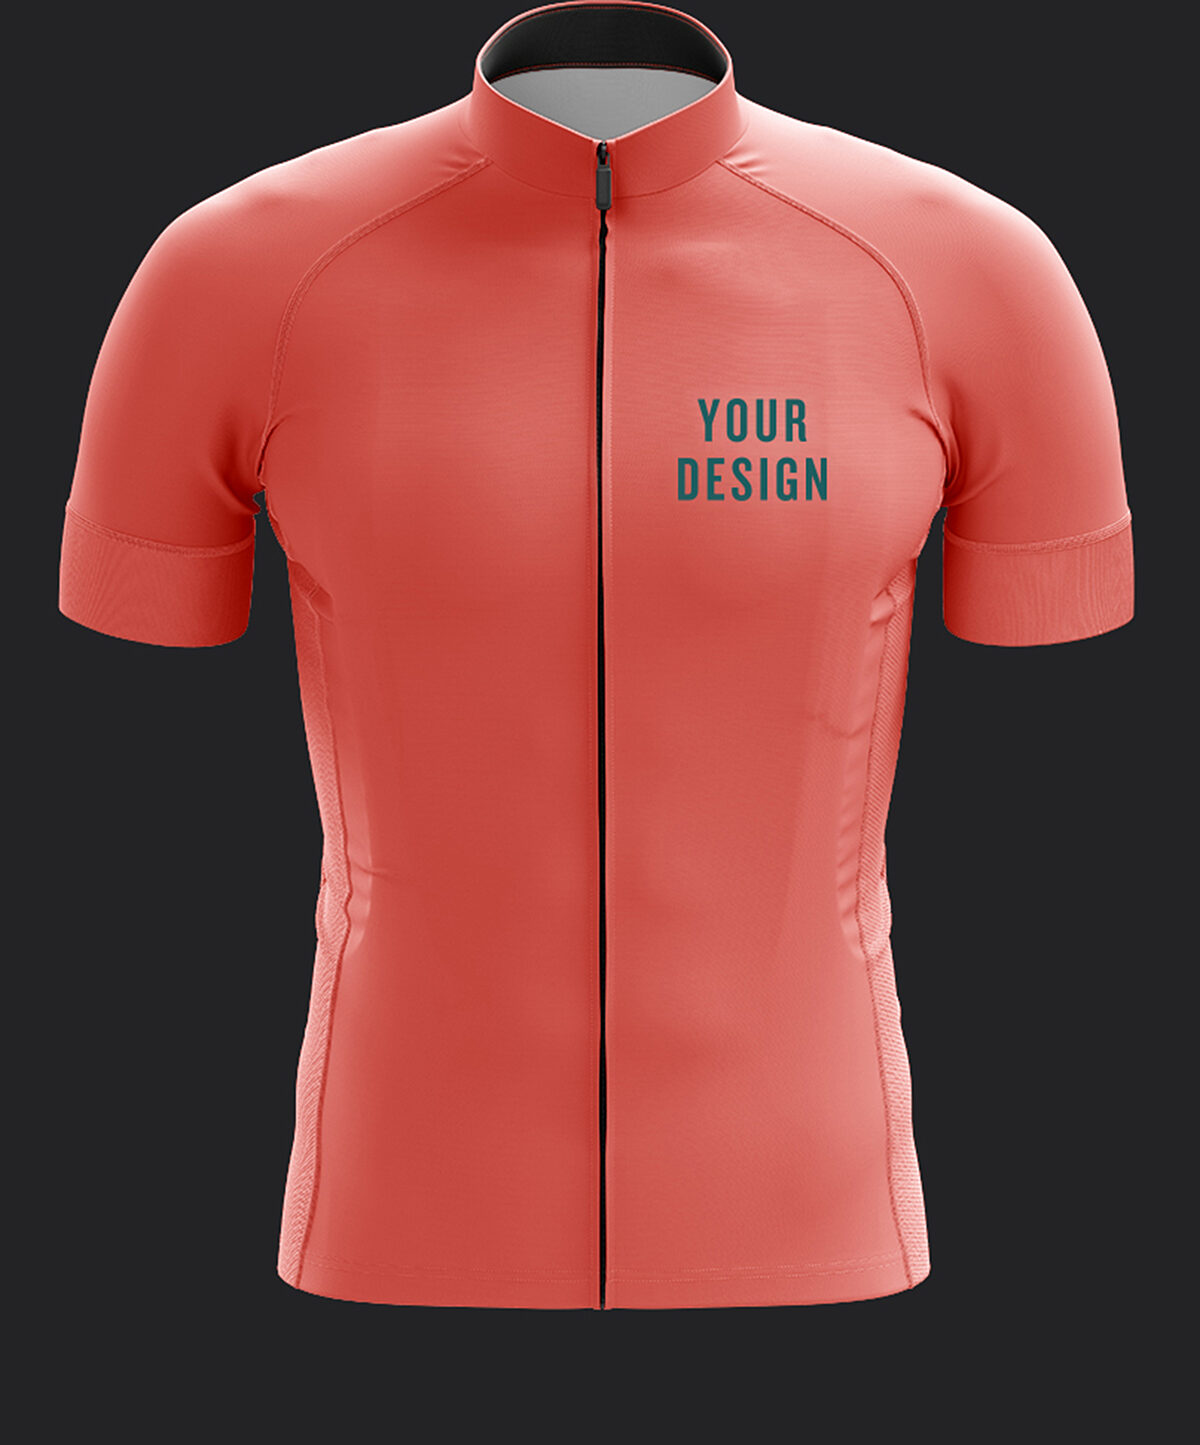 Bodhi cycling custom shortsleeve women